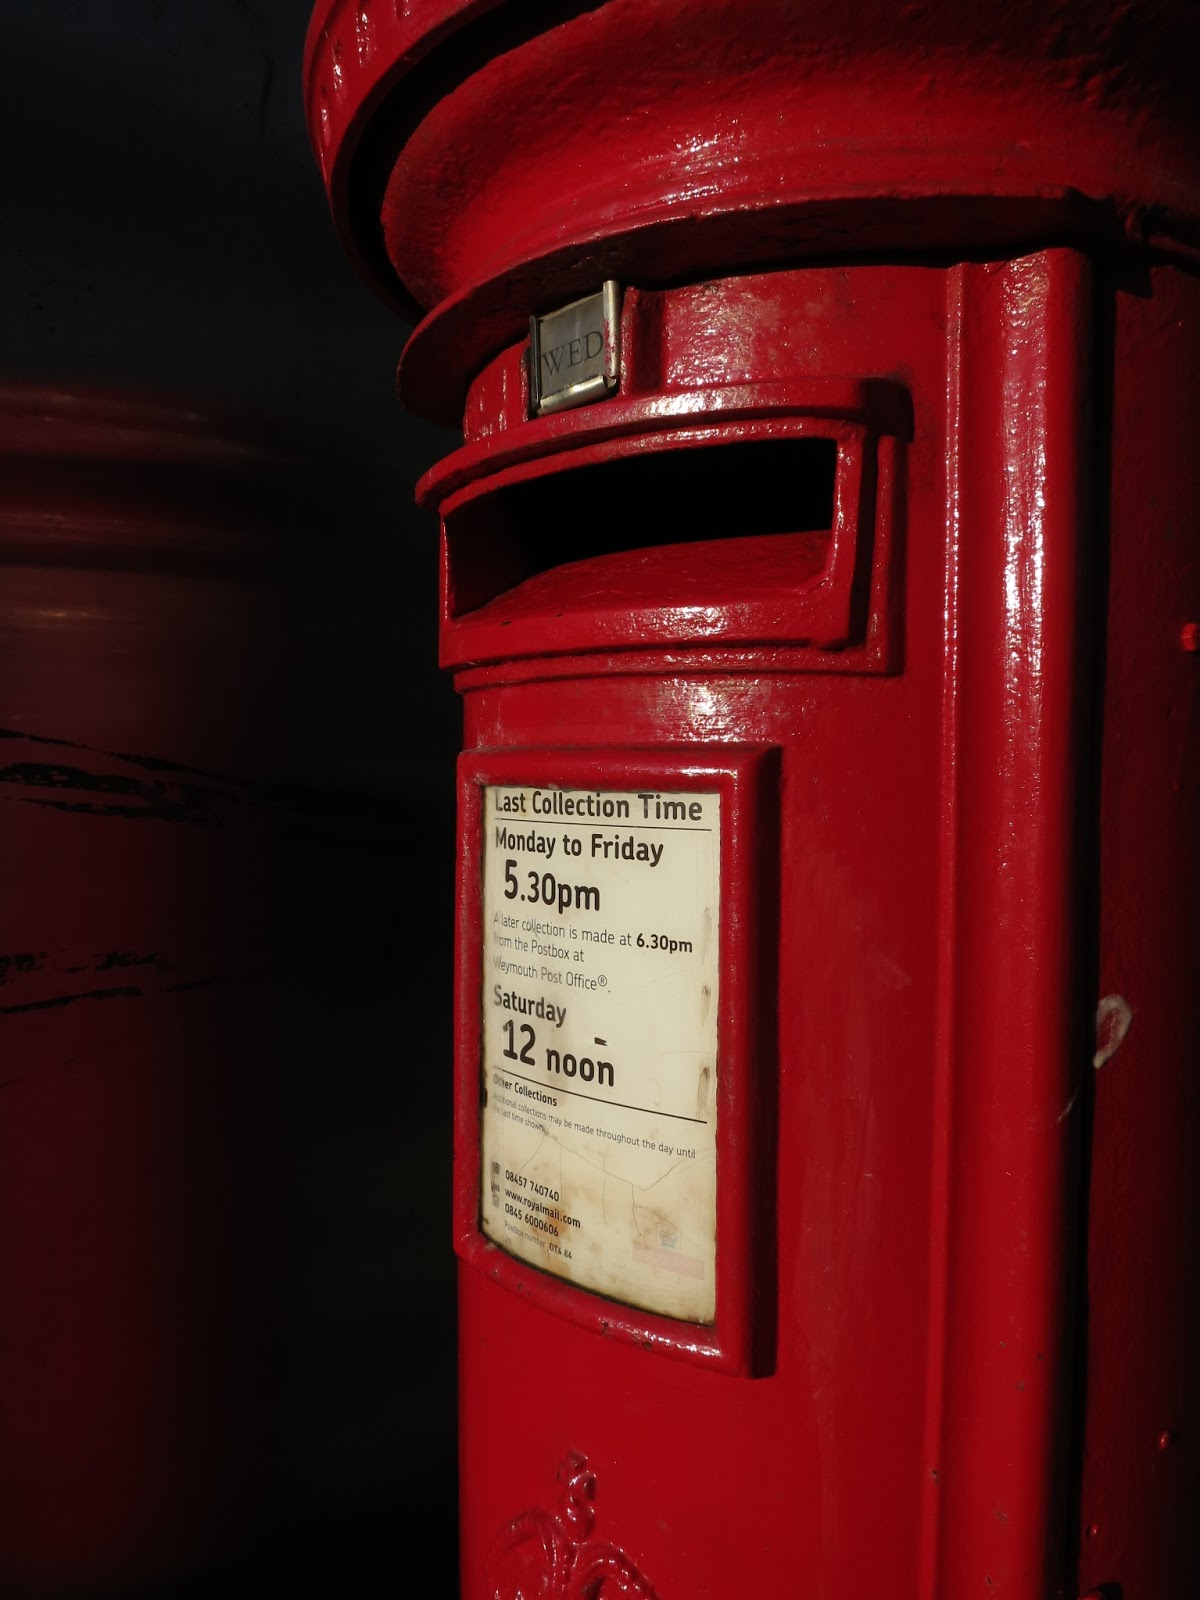 Pillar box with collection times and its reflection in adjacent phone box